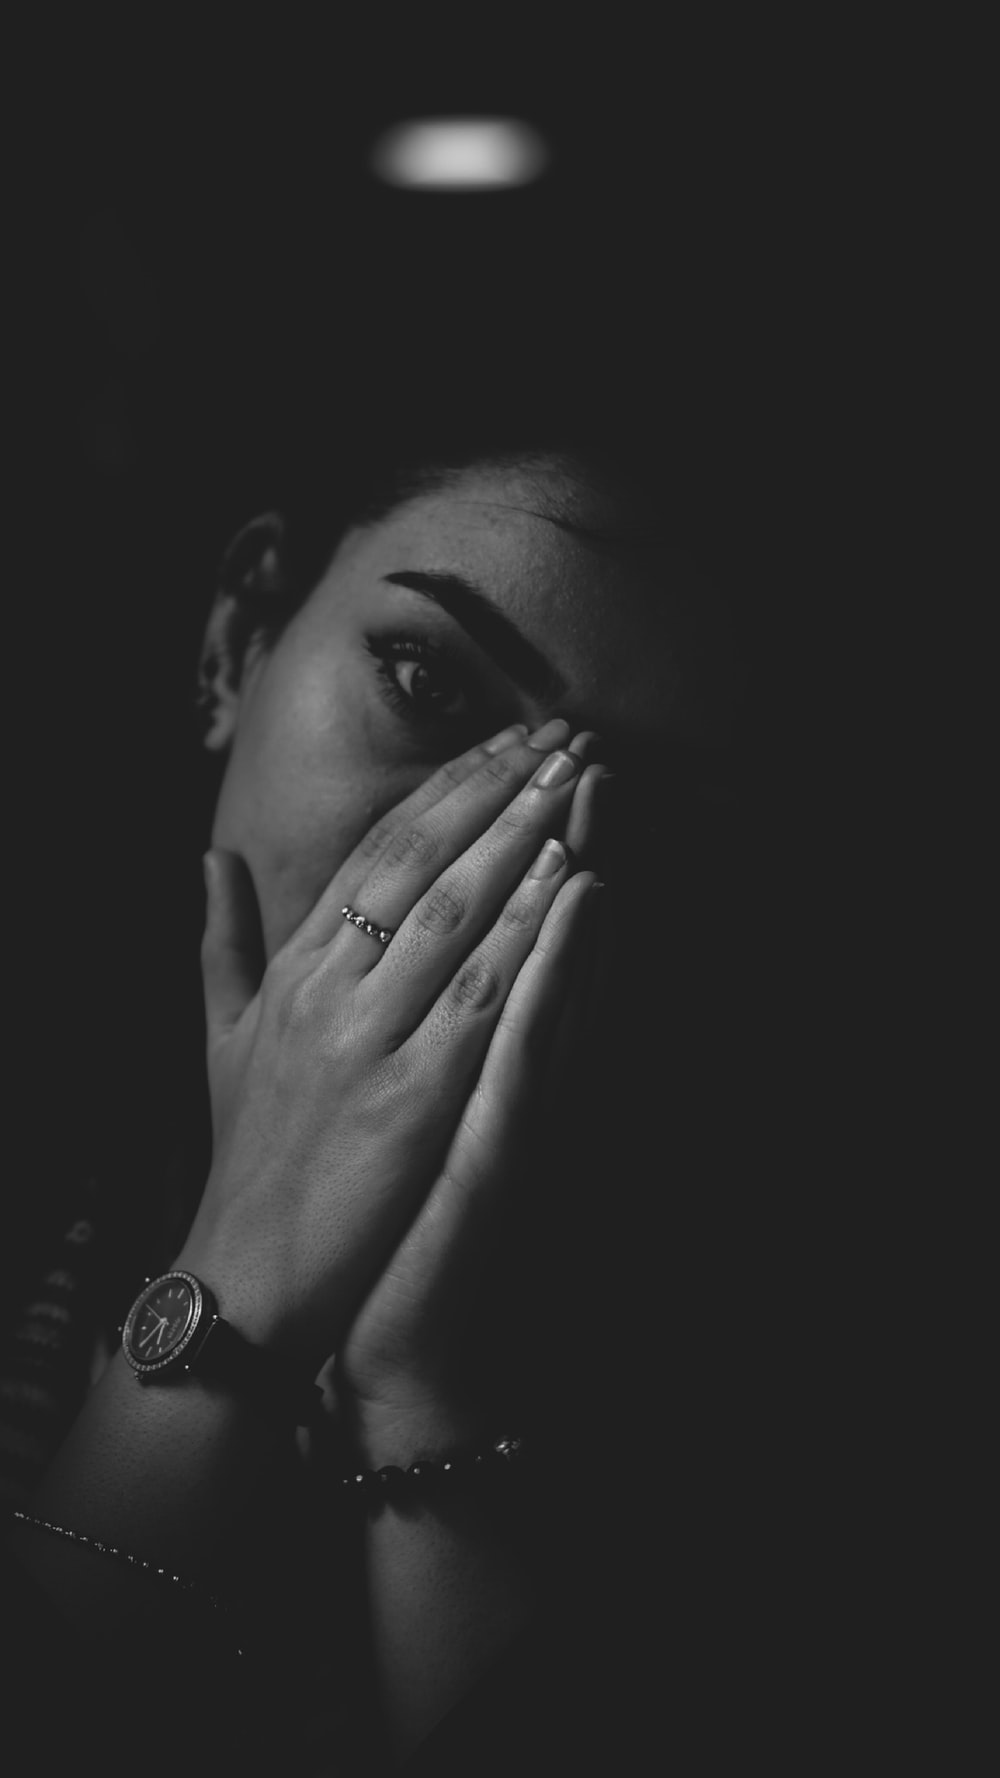 grayscale photography of woman covering her nose wit hands